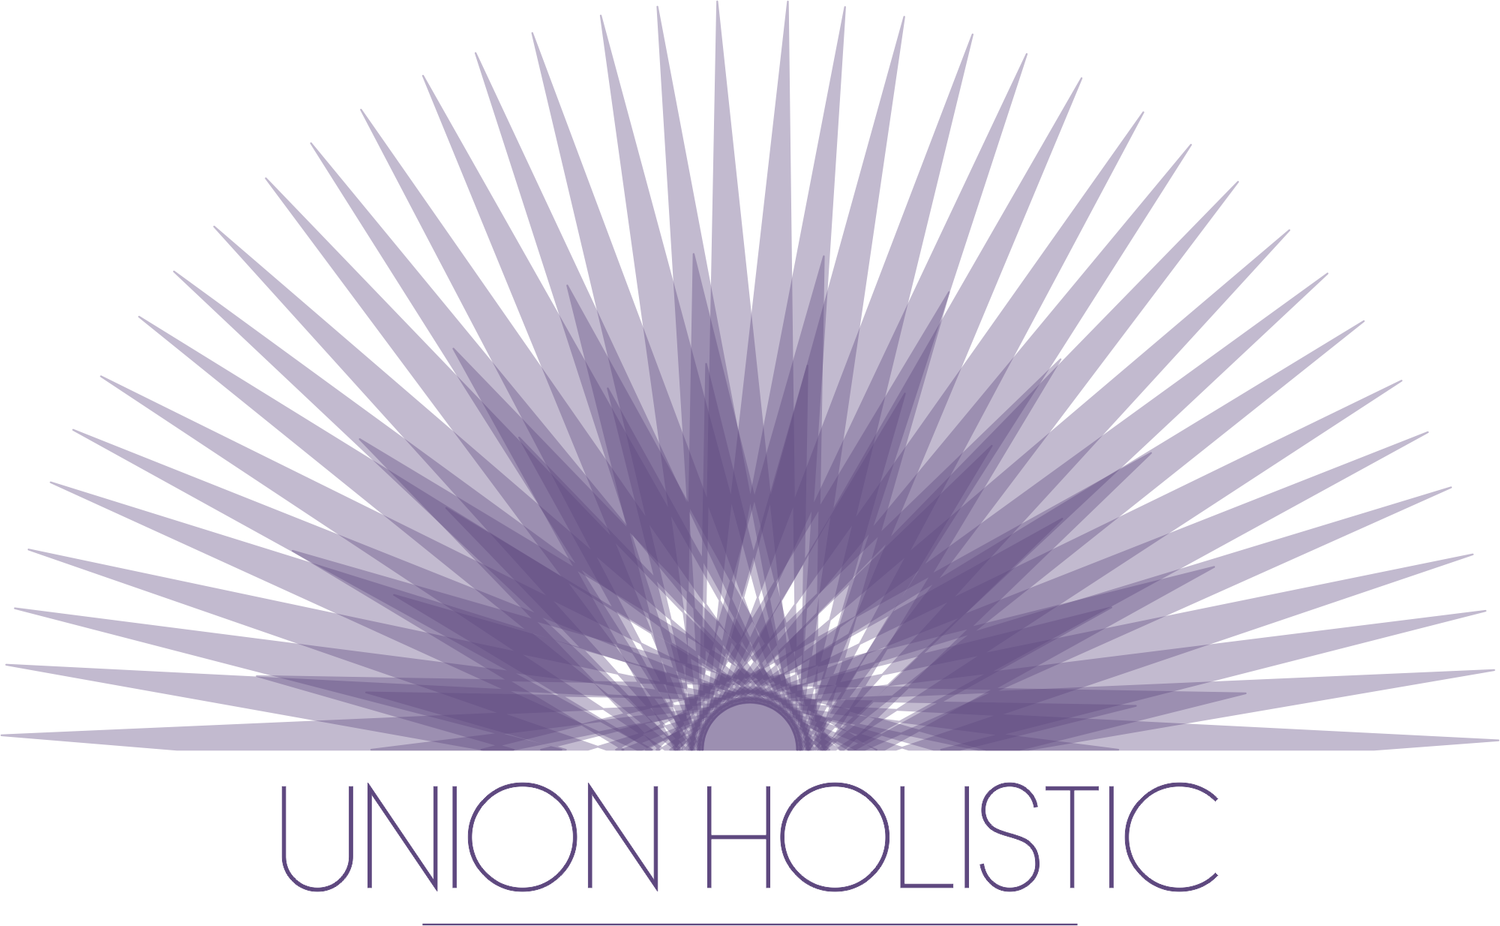 Union Holistic